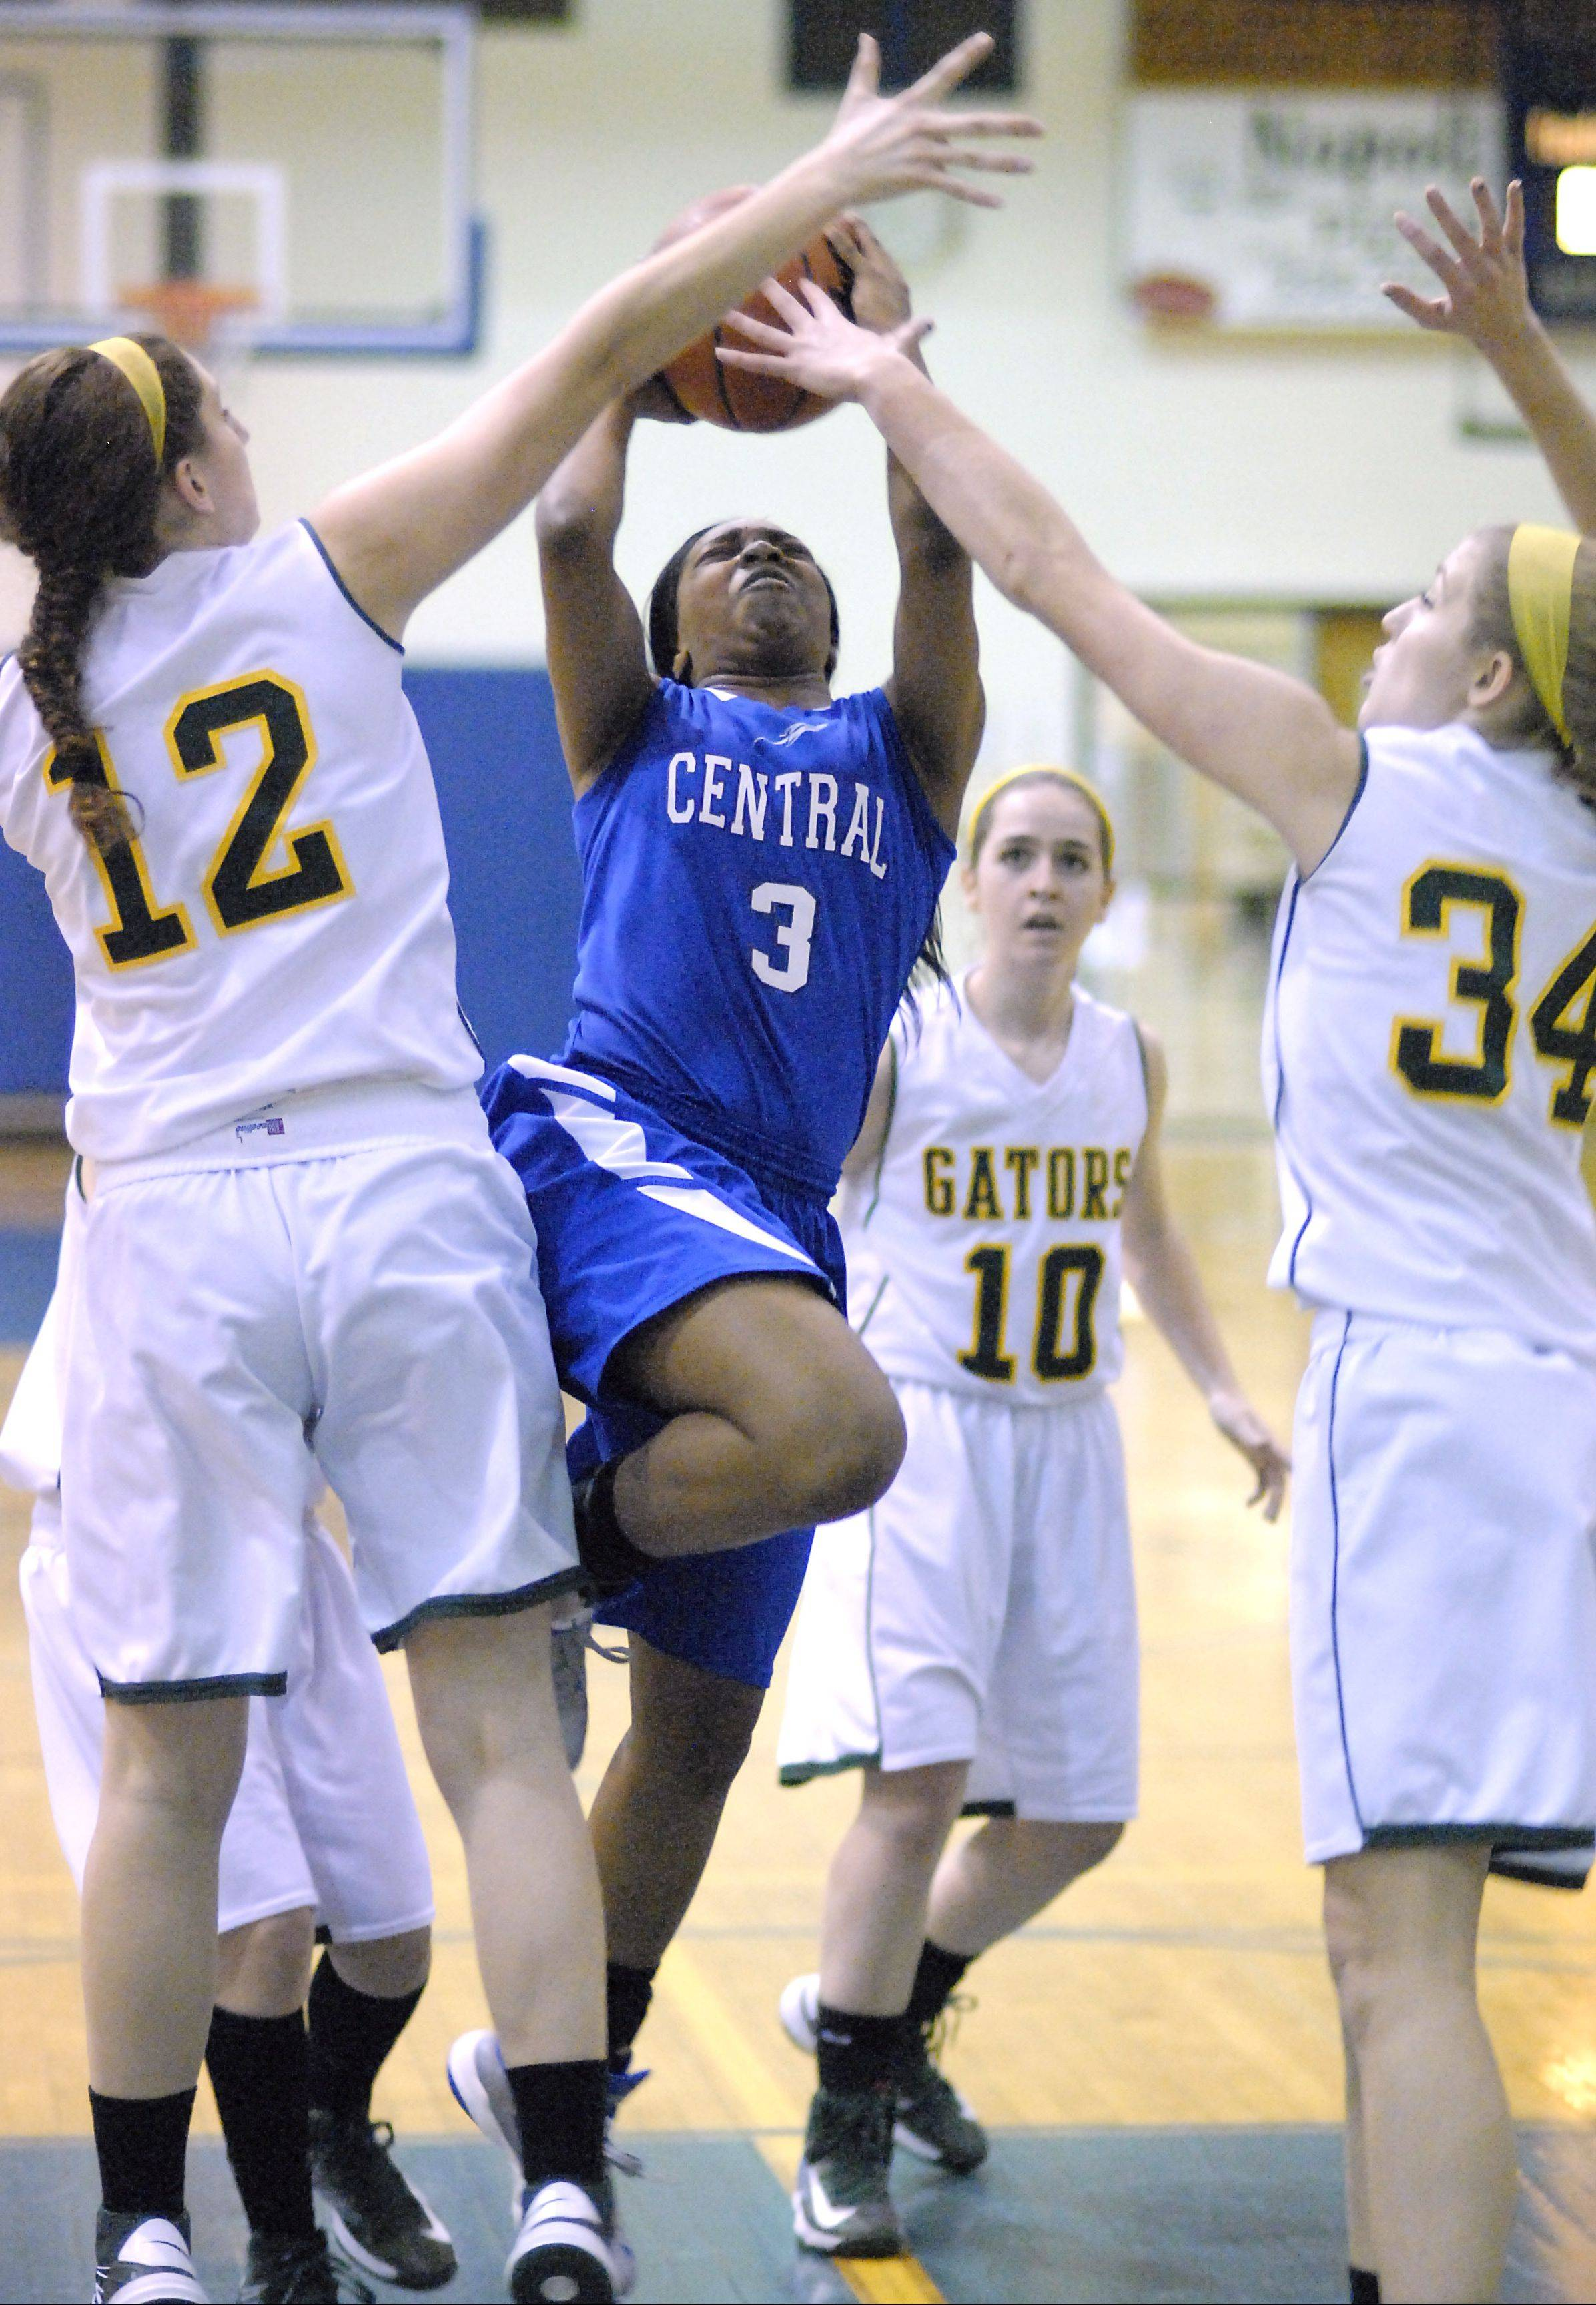 Burlington Central's Erica Haynes makes it past the defense of Crystal Lake South's Carly Nolan and Sara Mickow to score a basket during the Northern Illinois Holiday Classic at Woodstock Saturday.